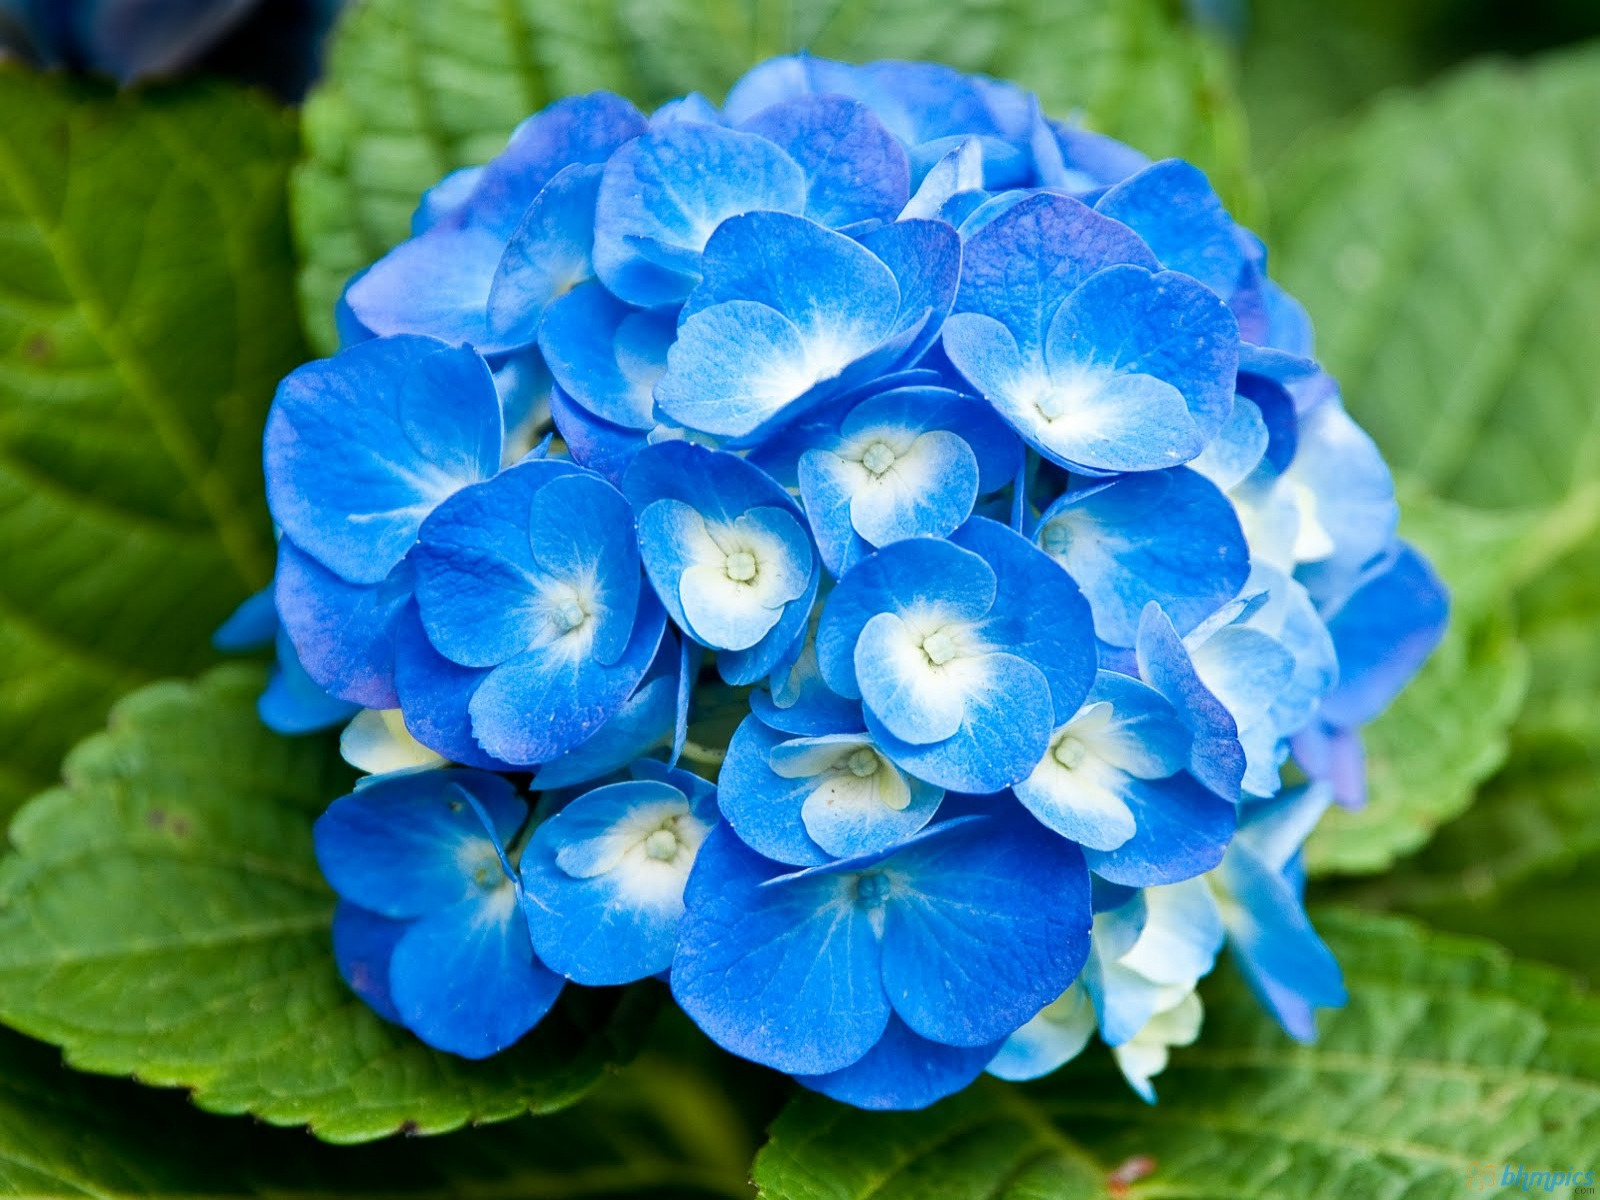 Blue Flowers Names And Meanings 21 Hd Wallpaper